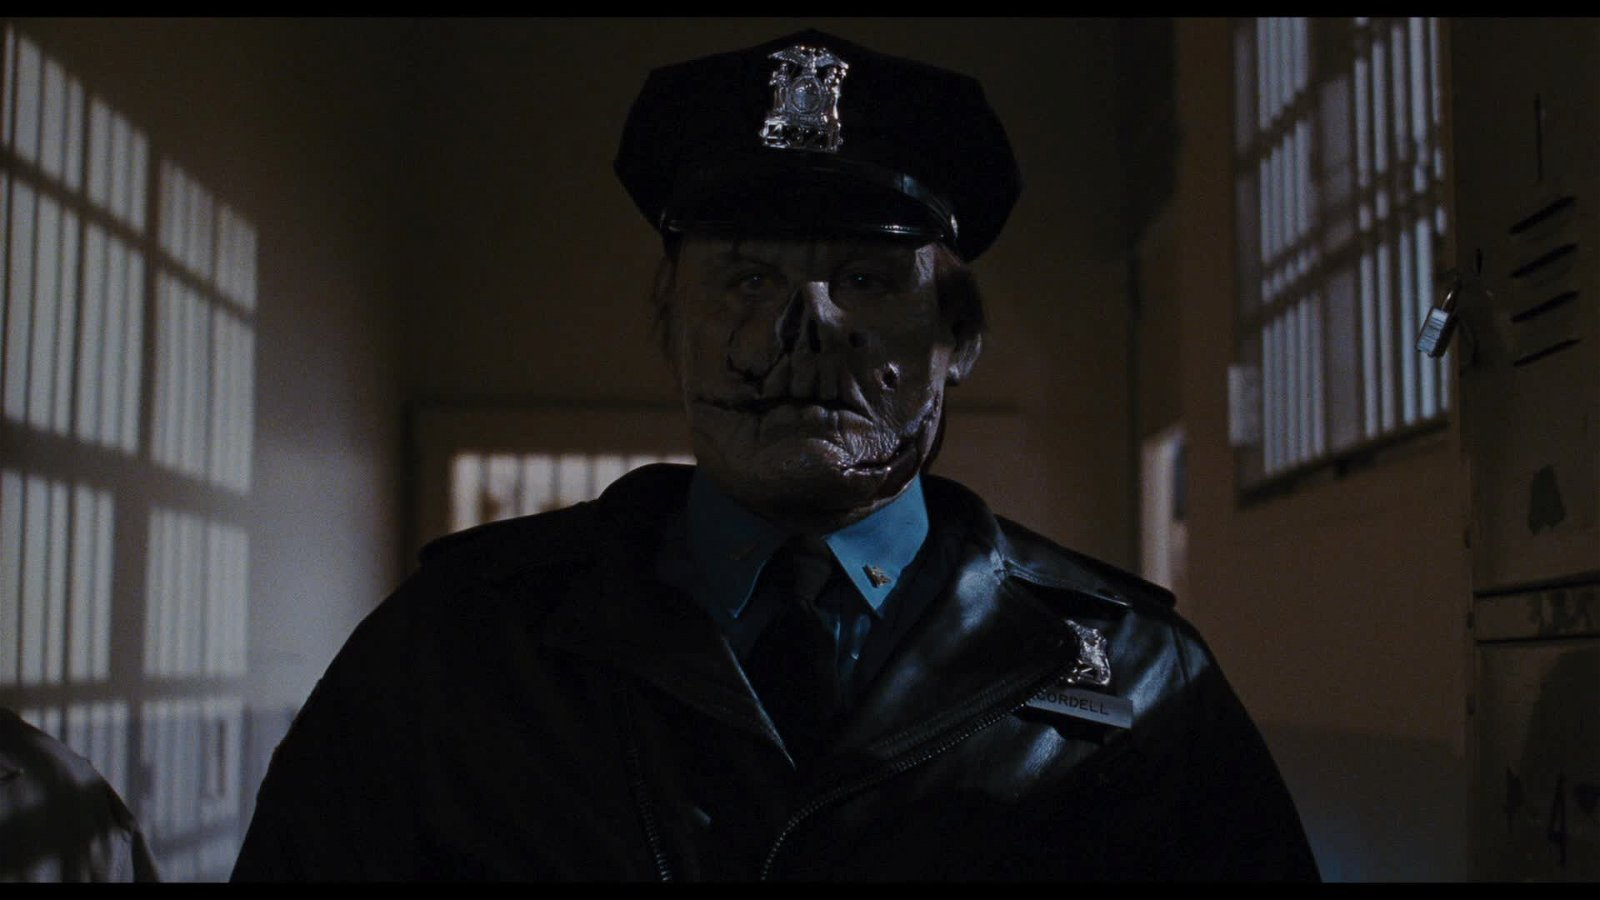 A Maniac Cop TV Series Is Coming From Nicolas Winding Refn